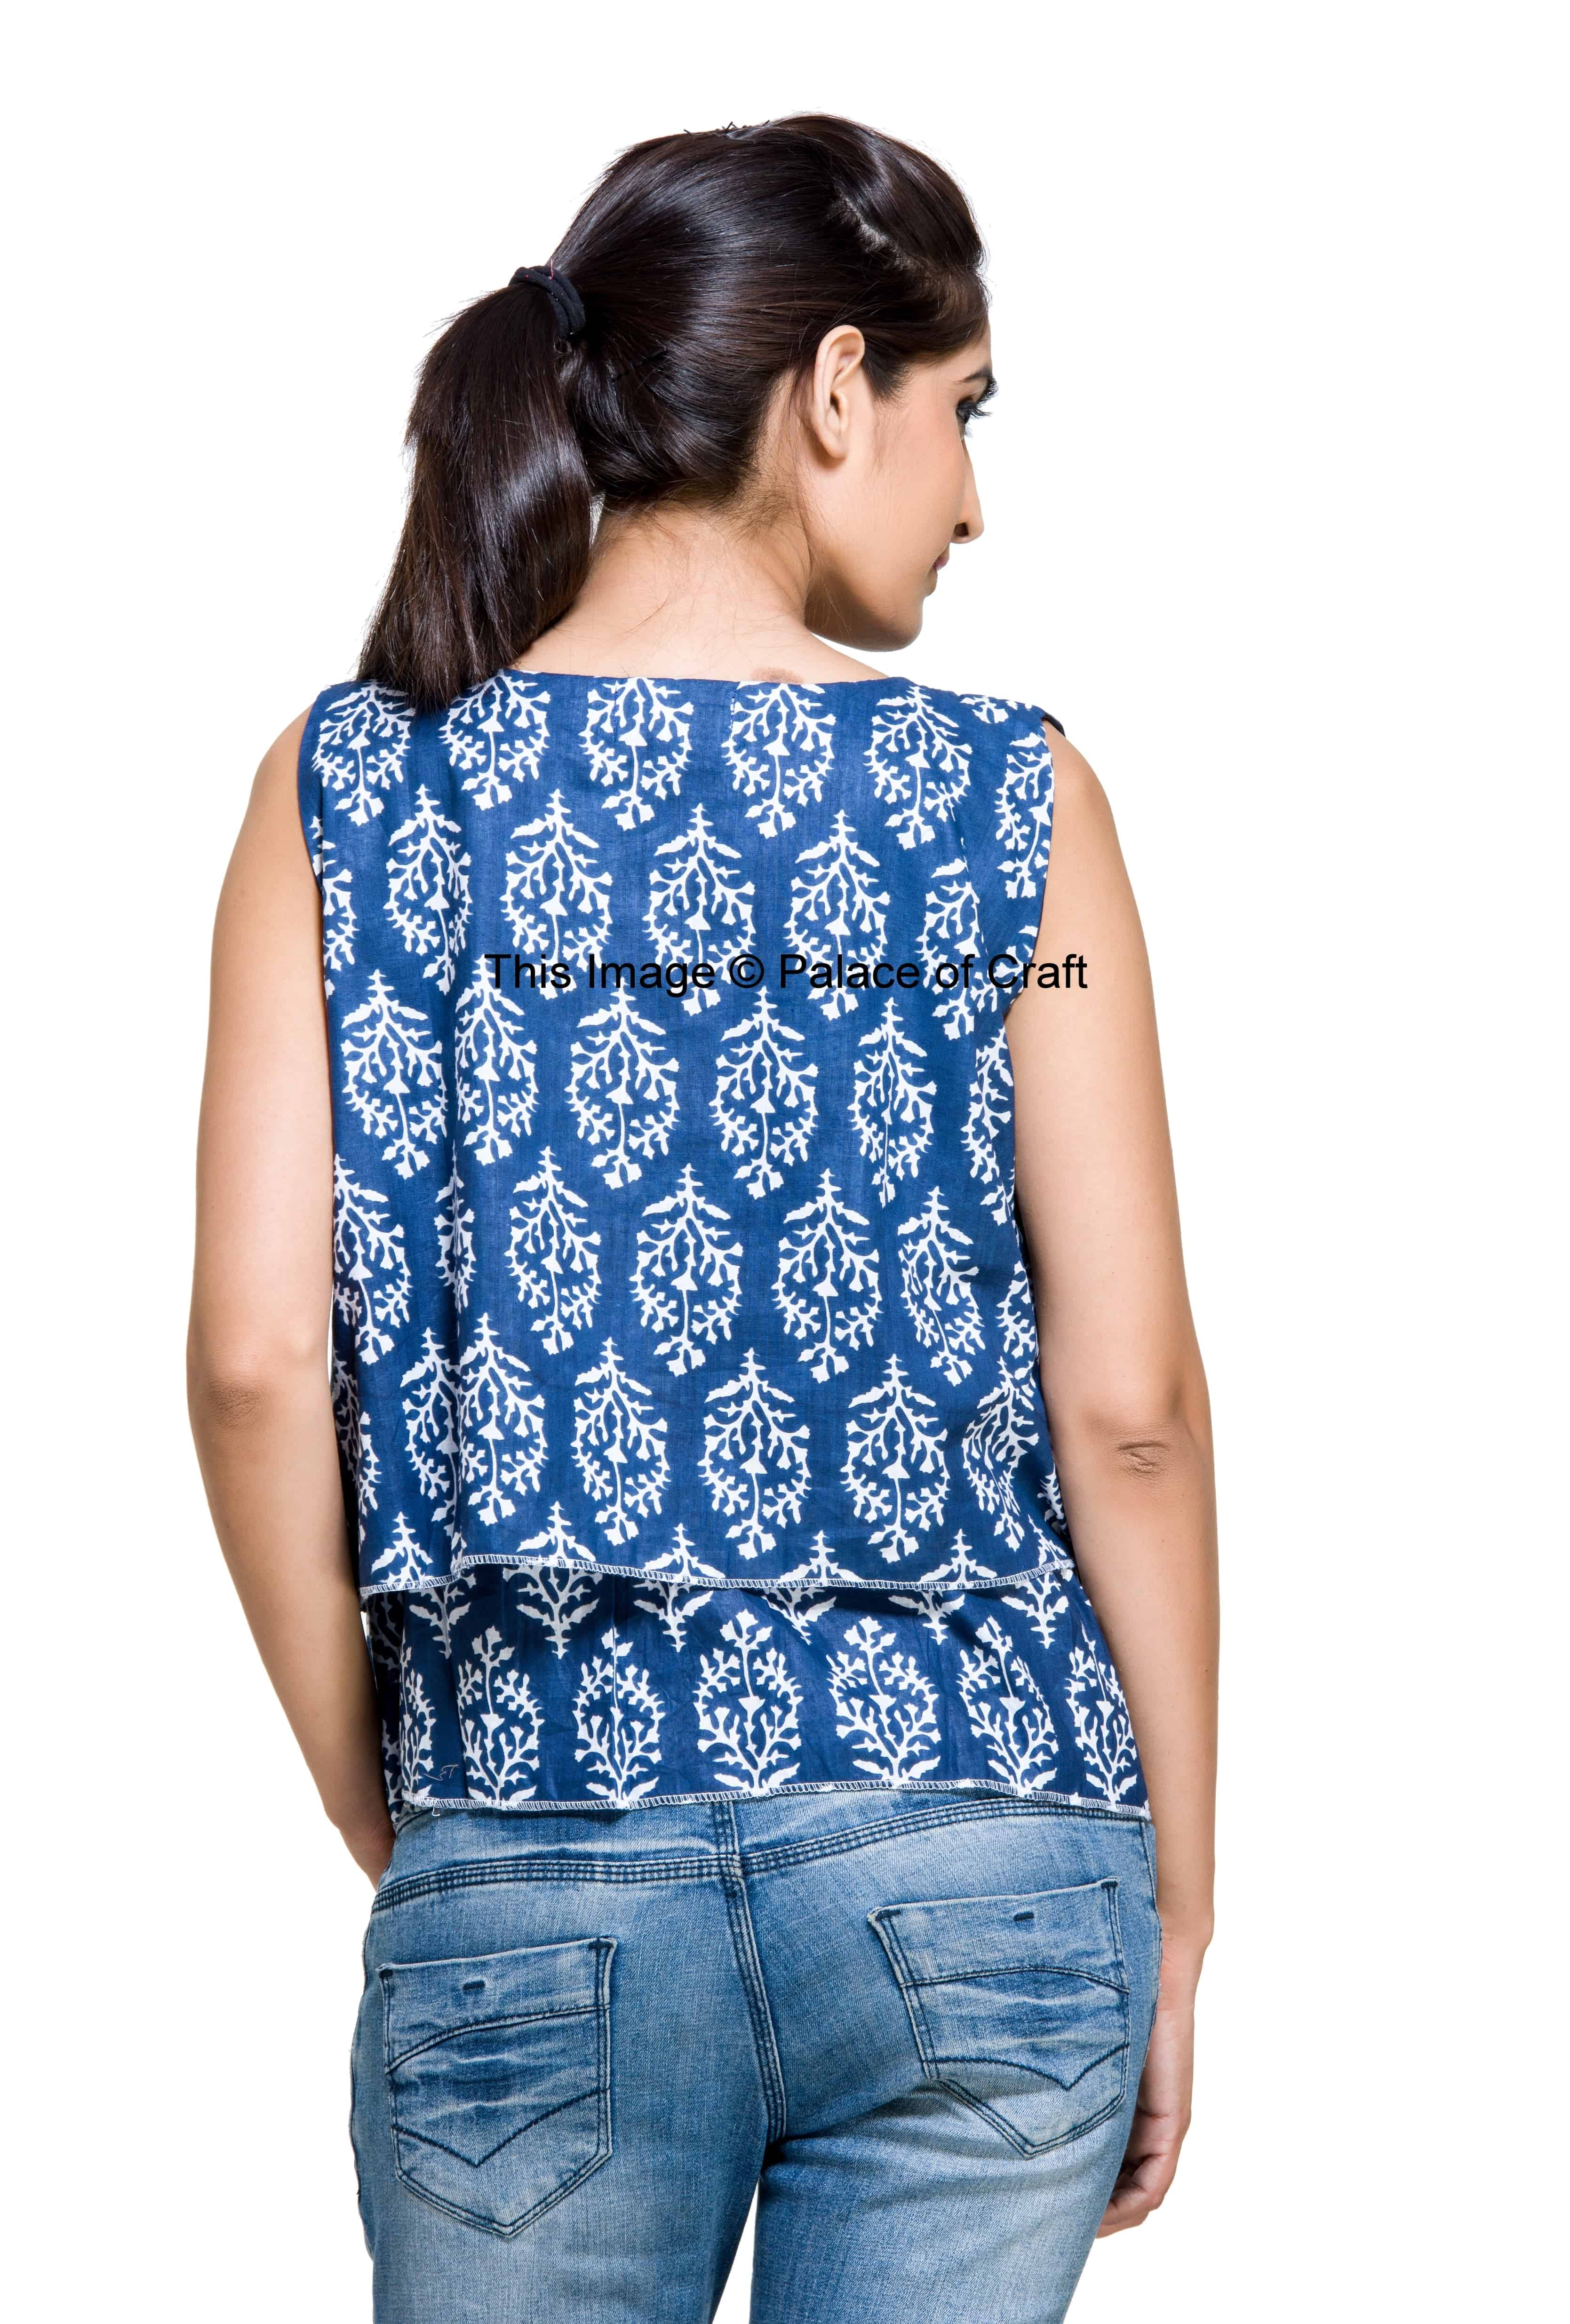 Womens Loose Casual T Shirt Sleeve Less Cotton Crop Tops